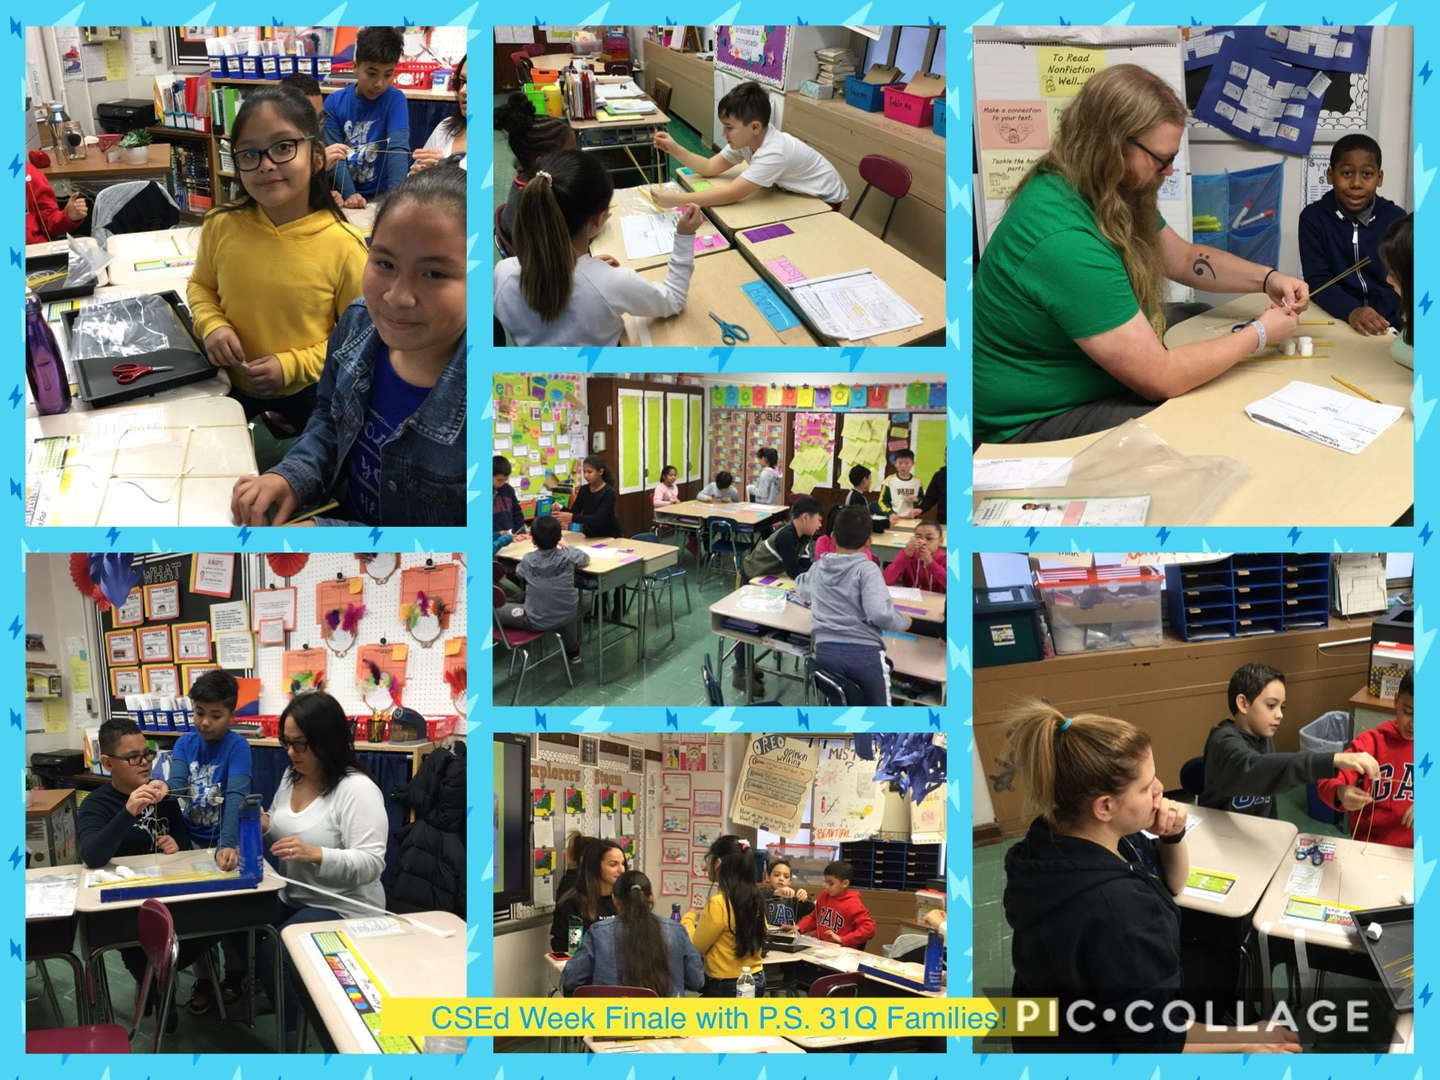 CSED Week Finale, Family Activity Collage 5